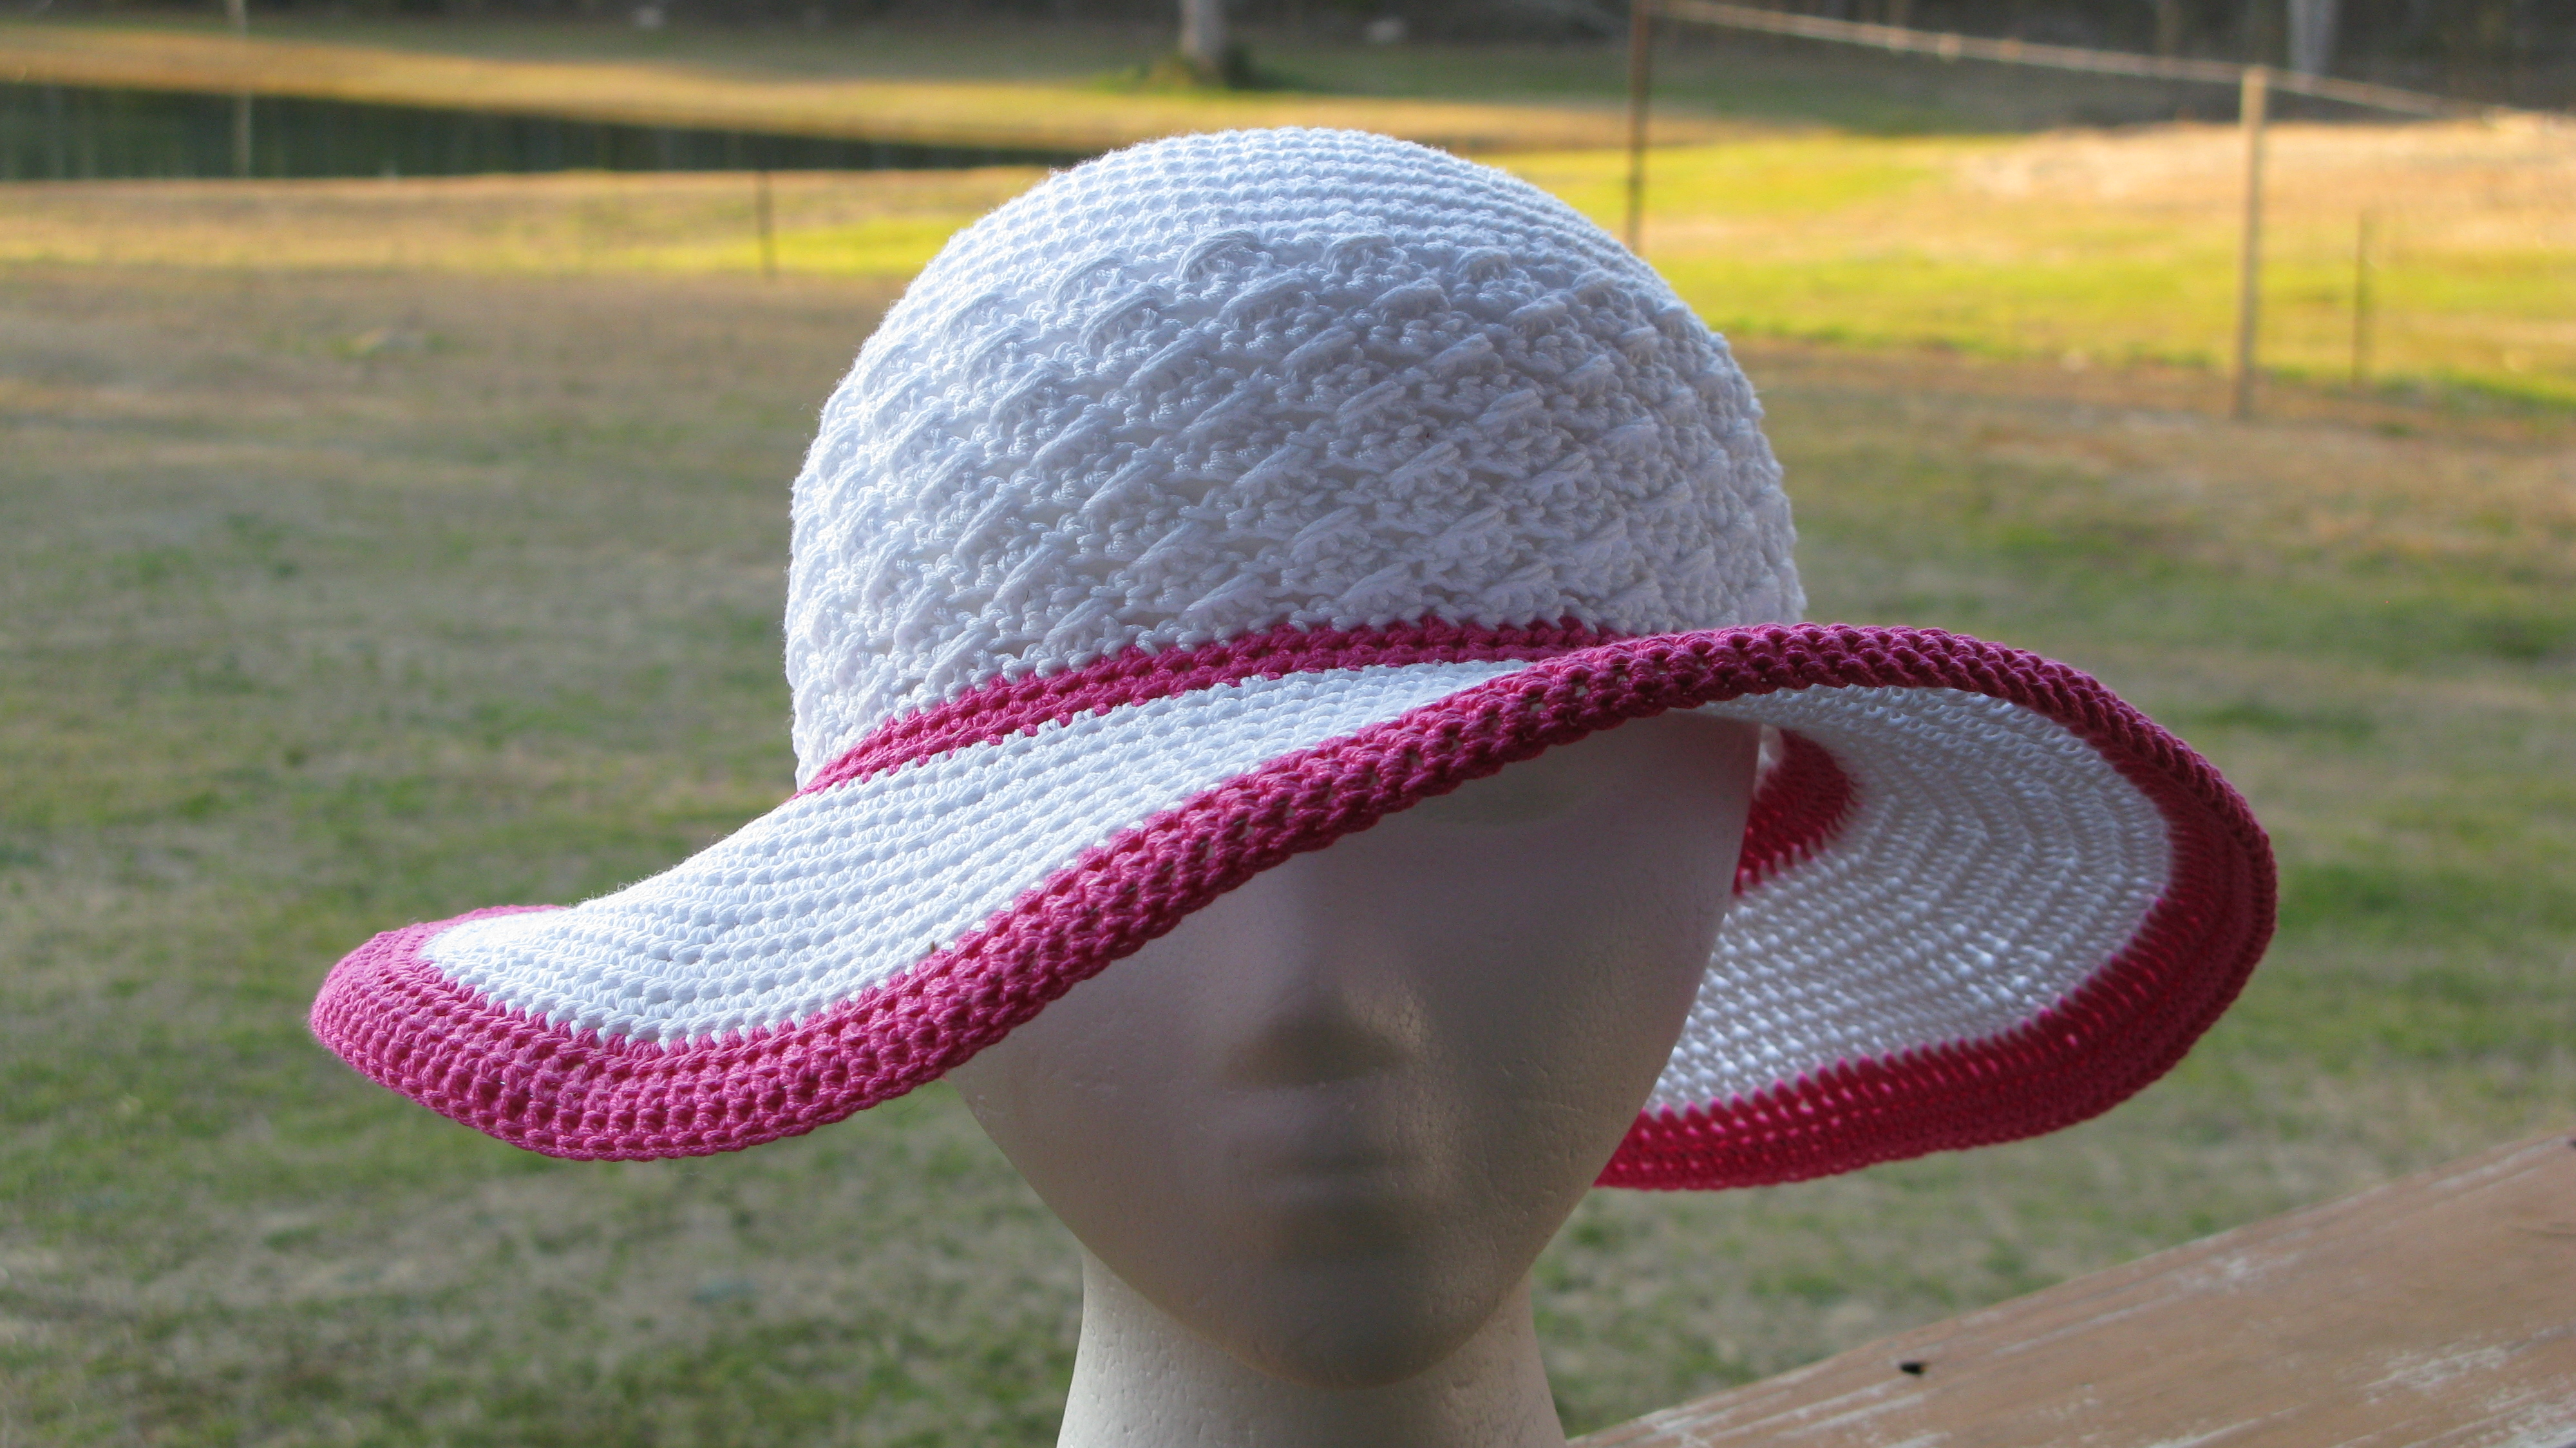 edce51233ef My Summer Beach Hat is in a Contest! - ELK Studio - Handcrafted ...